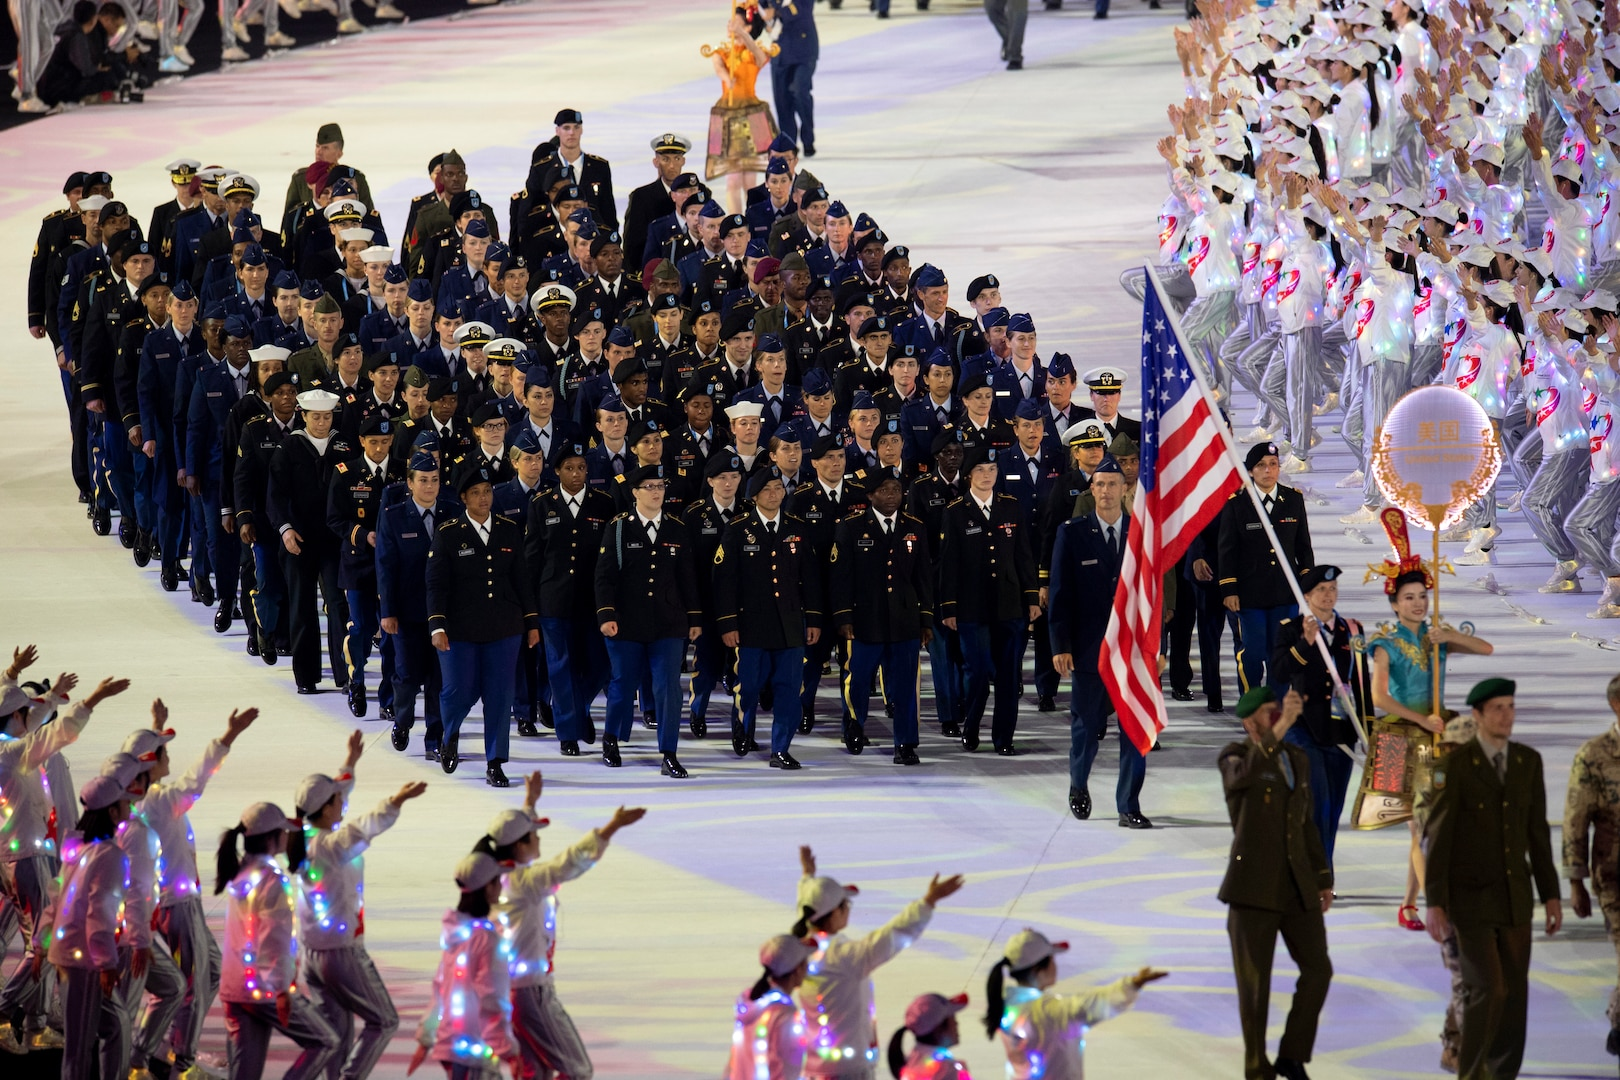 The U.S. Armed Forces Sports team marches during opening ceremonies for the 2019 CISM Military World Games in Wuhan, China Oct. 18, 2019. Teams from more than 100 countries will compete in dozens of sporting events through Oct. 28. (DoD photo by EJ Hersom)